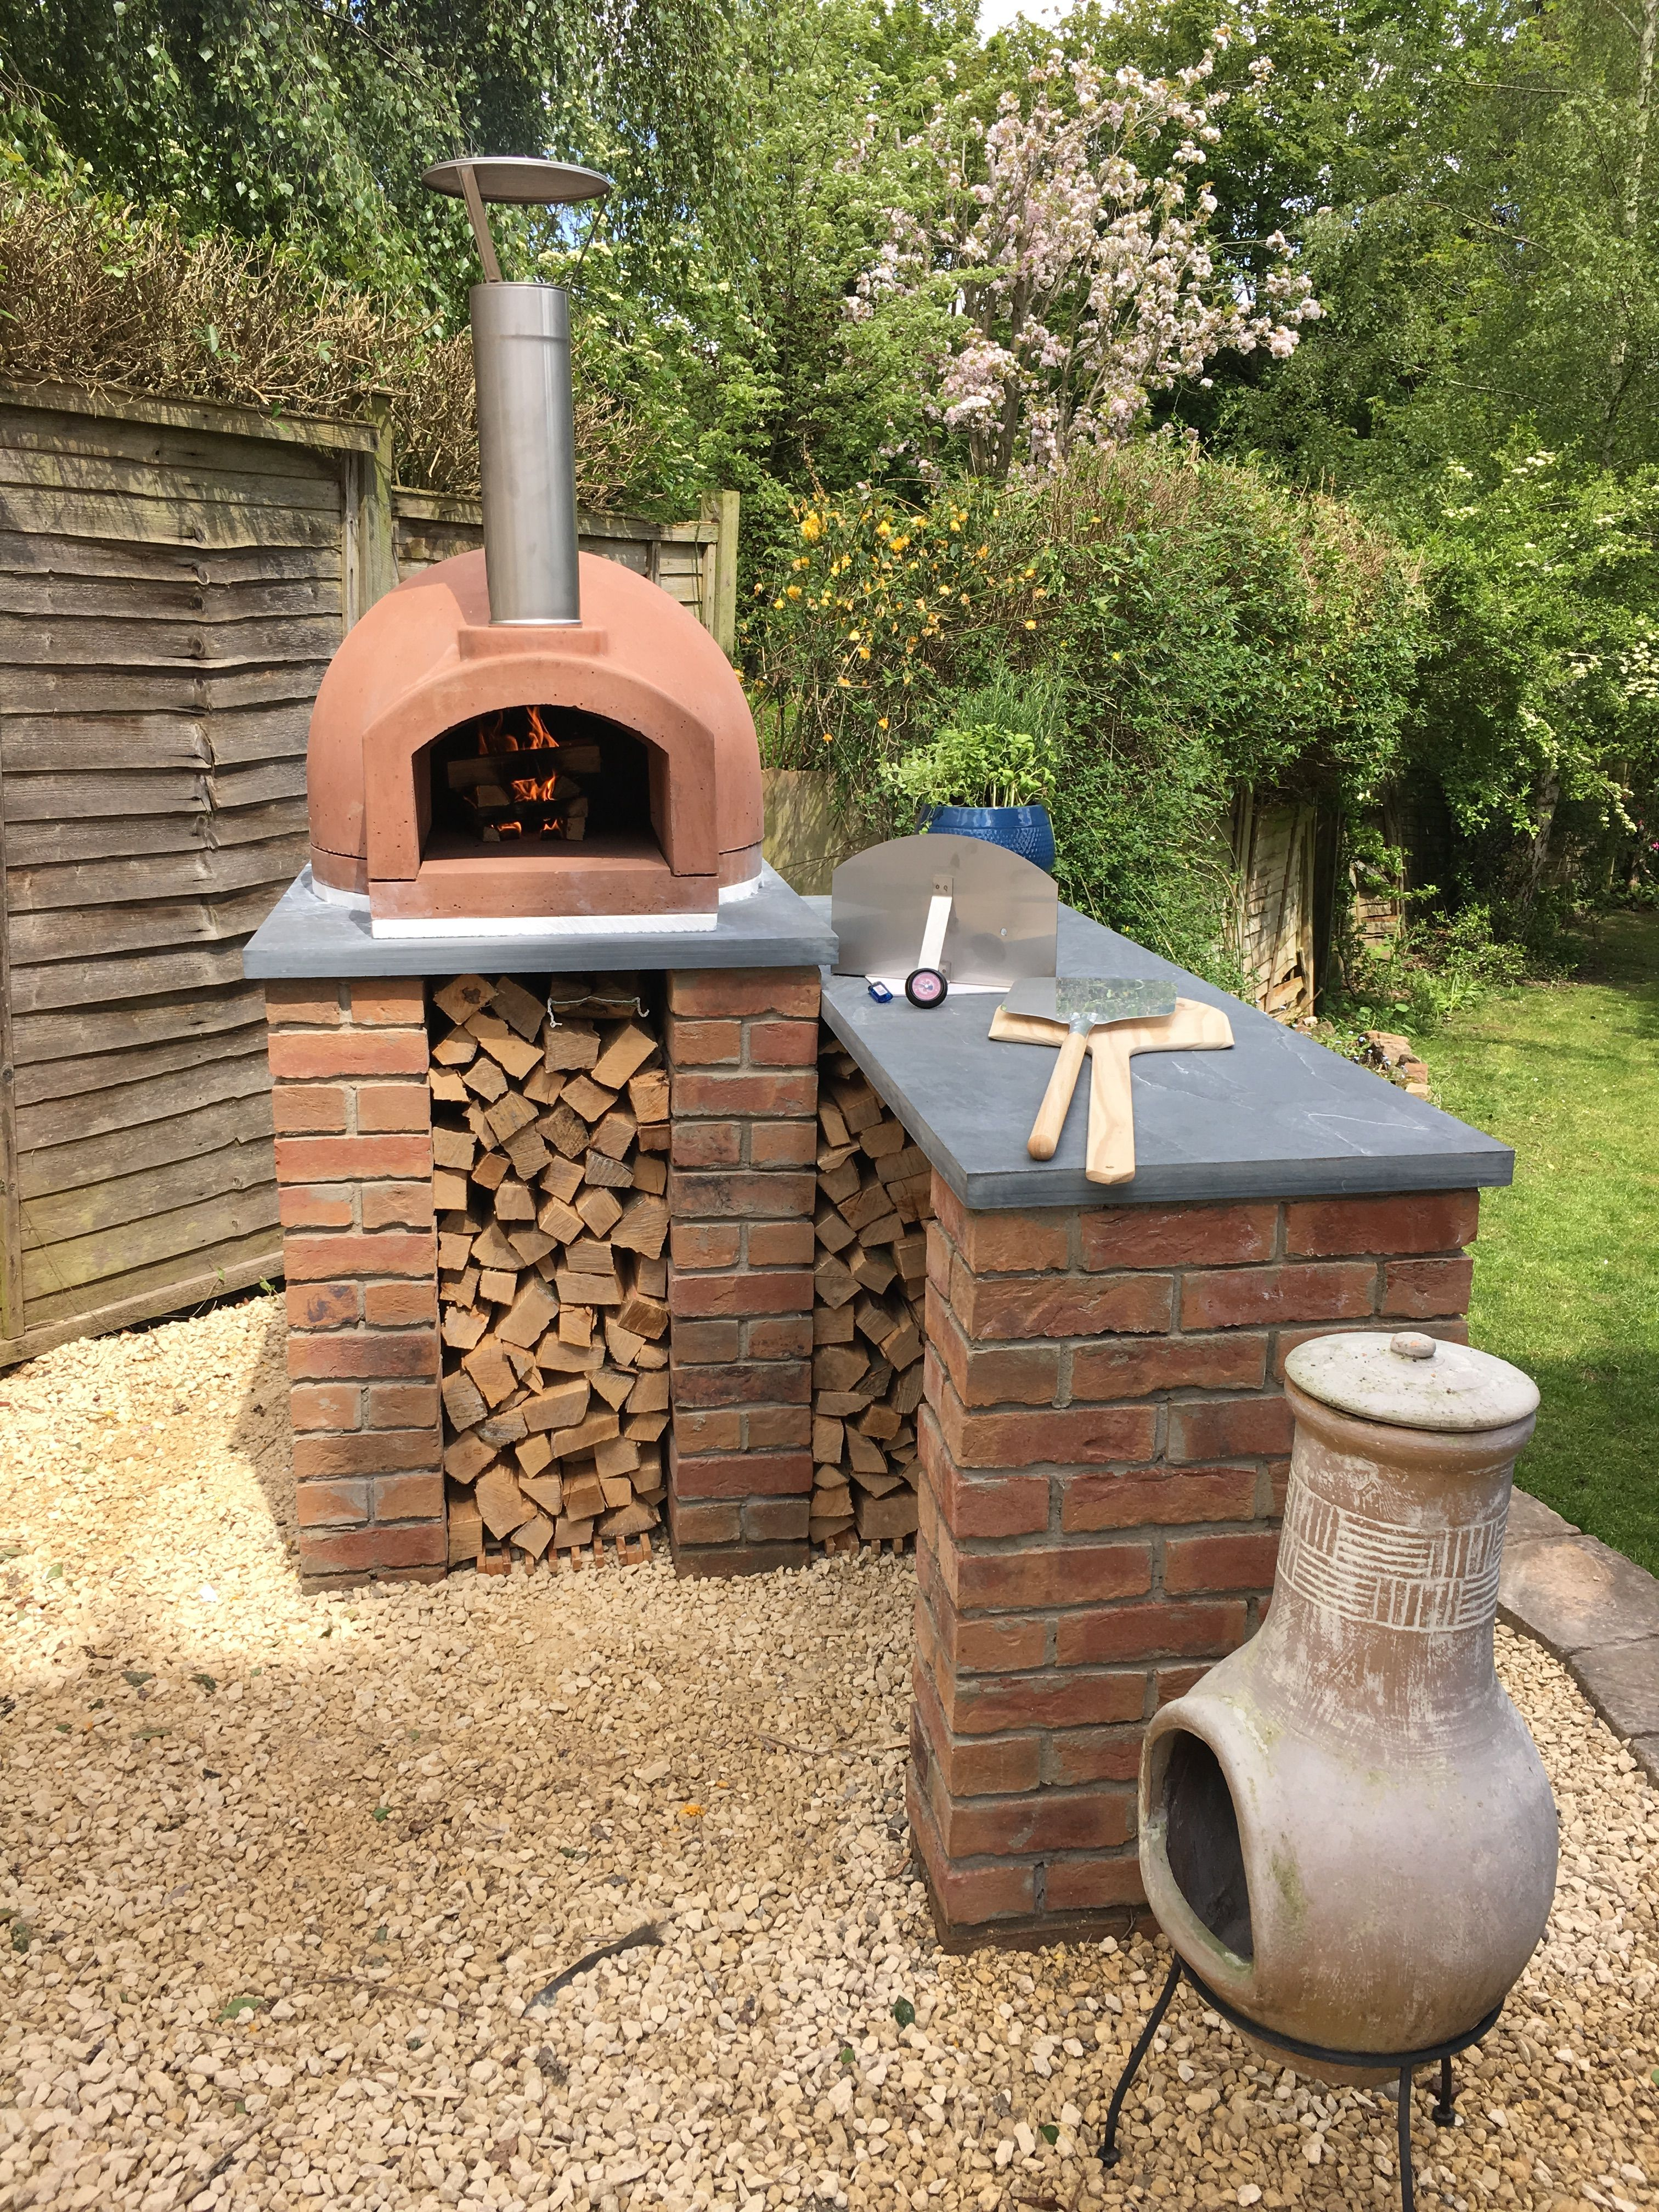 Pin by Ed Kaminski on Wood fired oven in 2020   Diy pizza